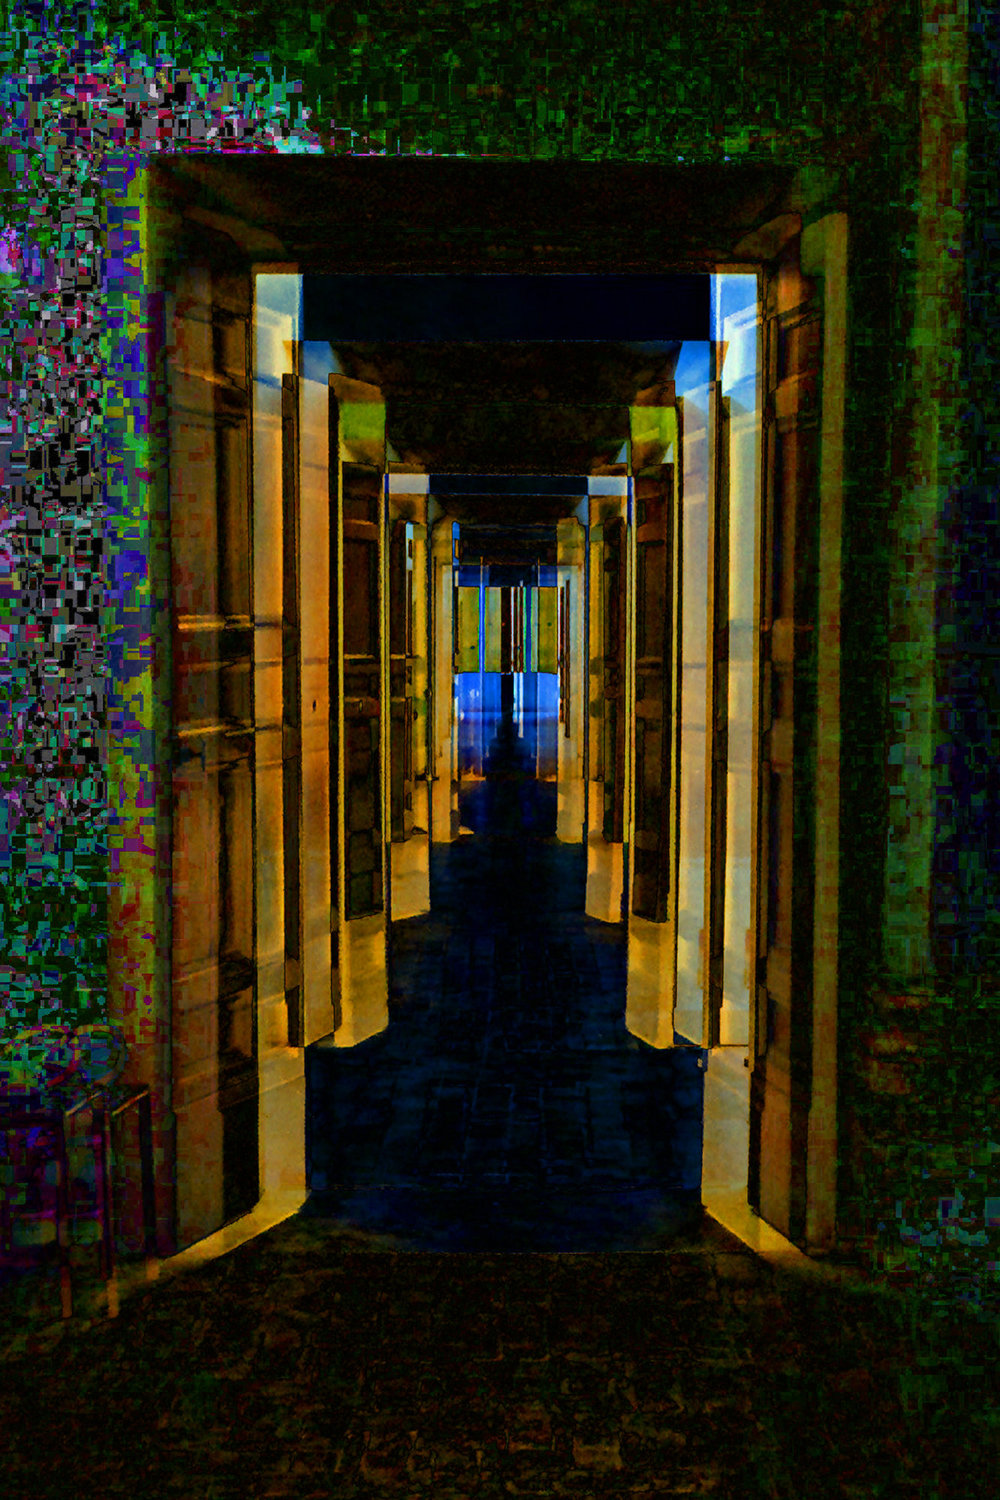 """Doors to Nowhere""  45"" x 30"" Digital print on Aluminum with a high gloss finish."